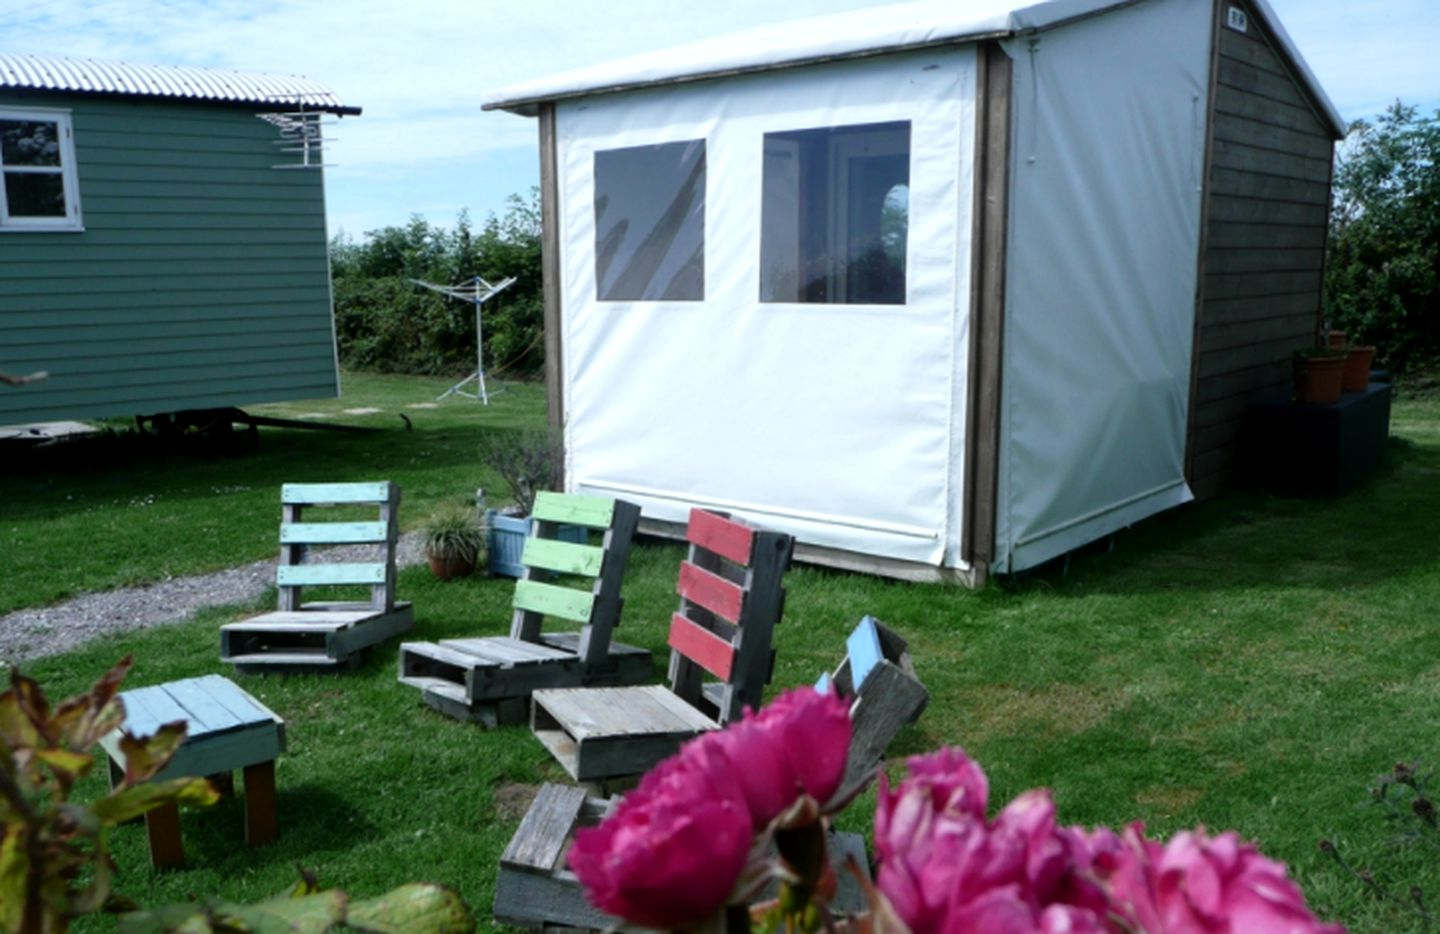 Tented Cabins (Penmaen, Wales, United Kingdom)